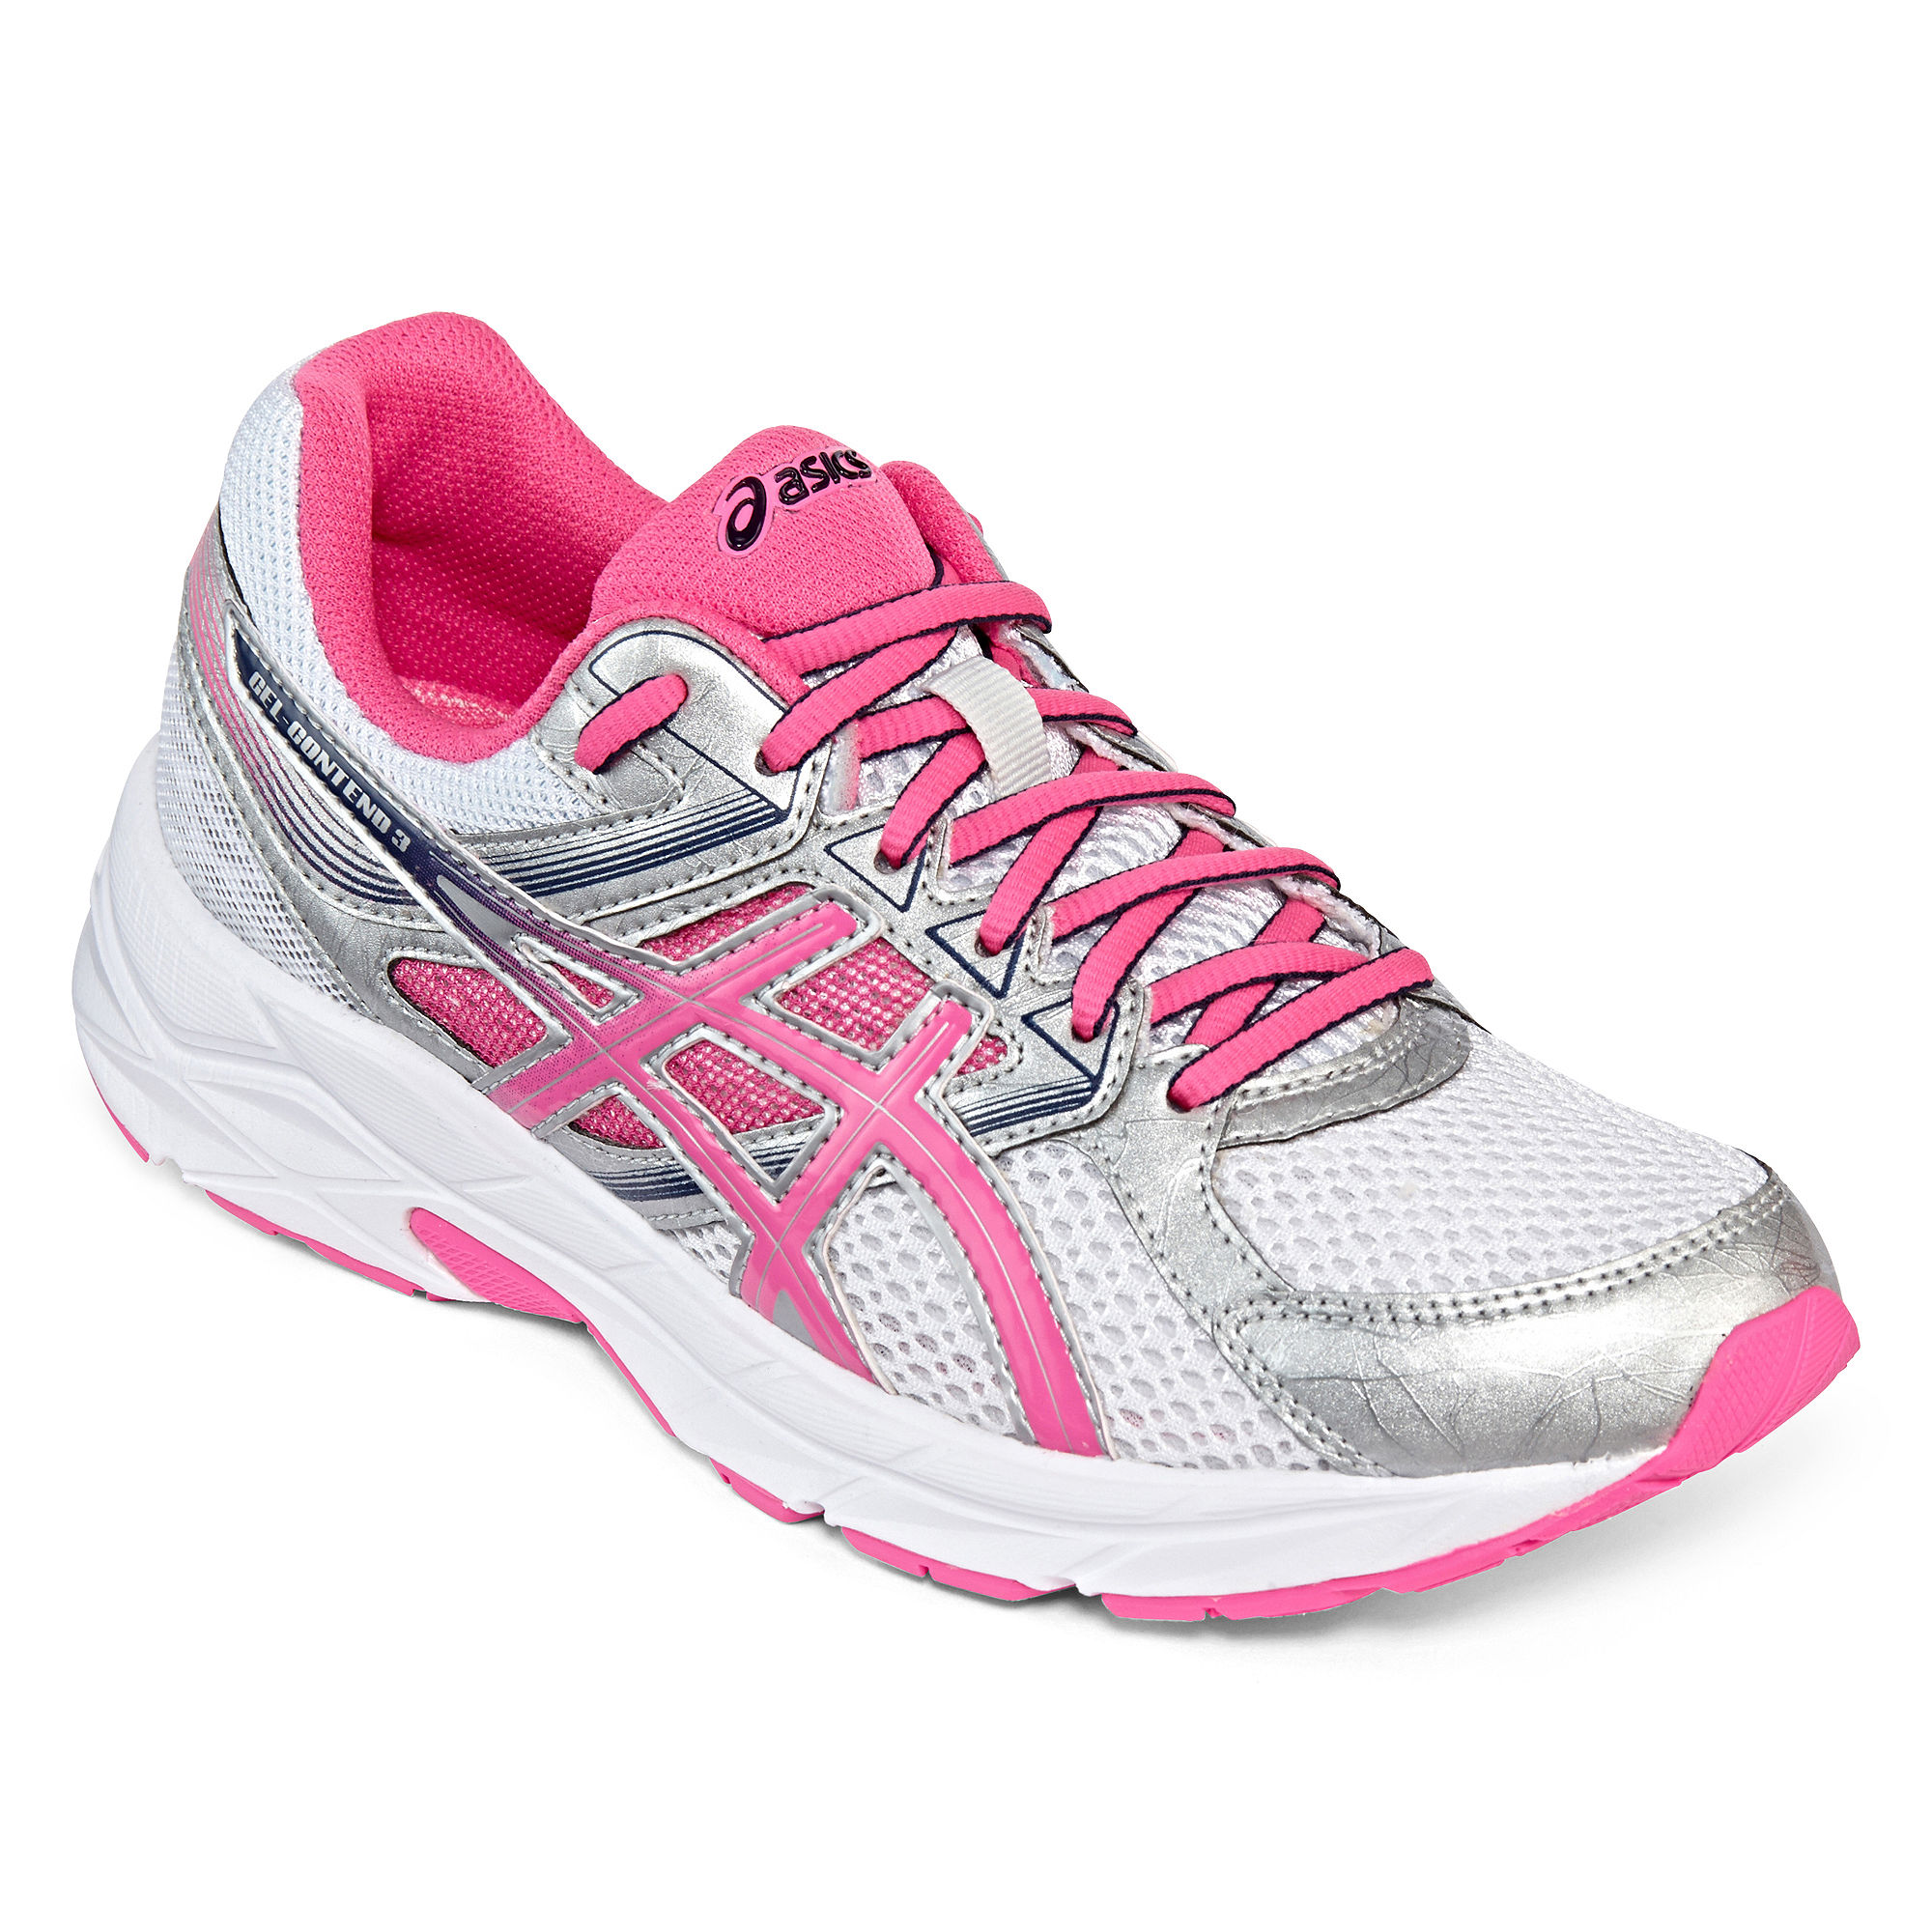 UPC 887749980776 product image for ASICS Women's GEL-Contend 3 Running Shoes  T5F9N | upcitemdb